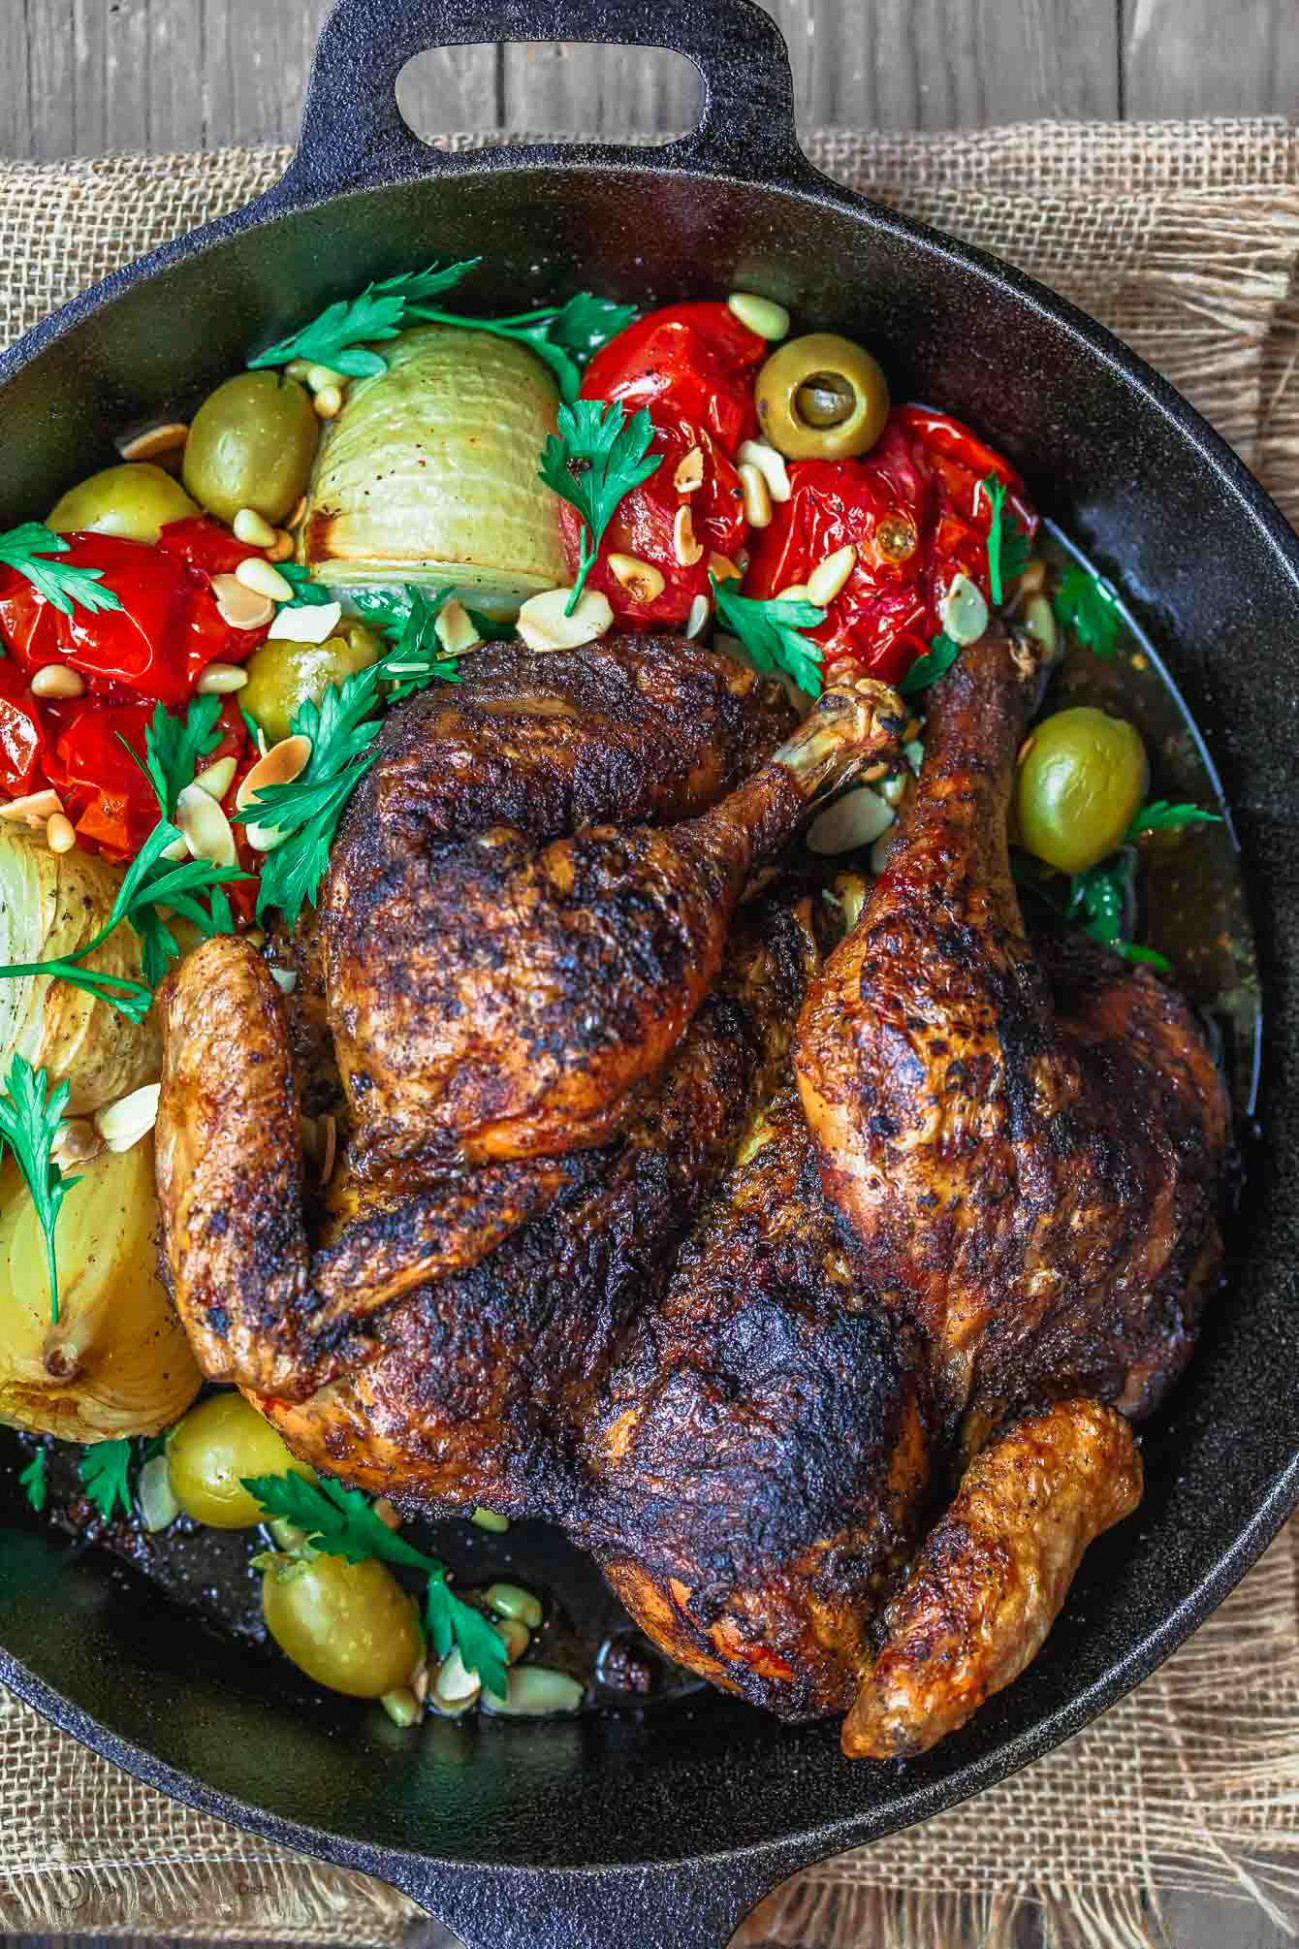 Crispy Spatchcocked Chicken Recipe | The Mediterranean Dish - recipes for chicken